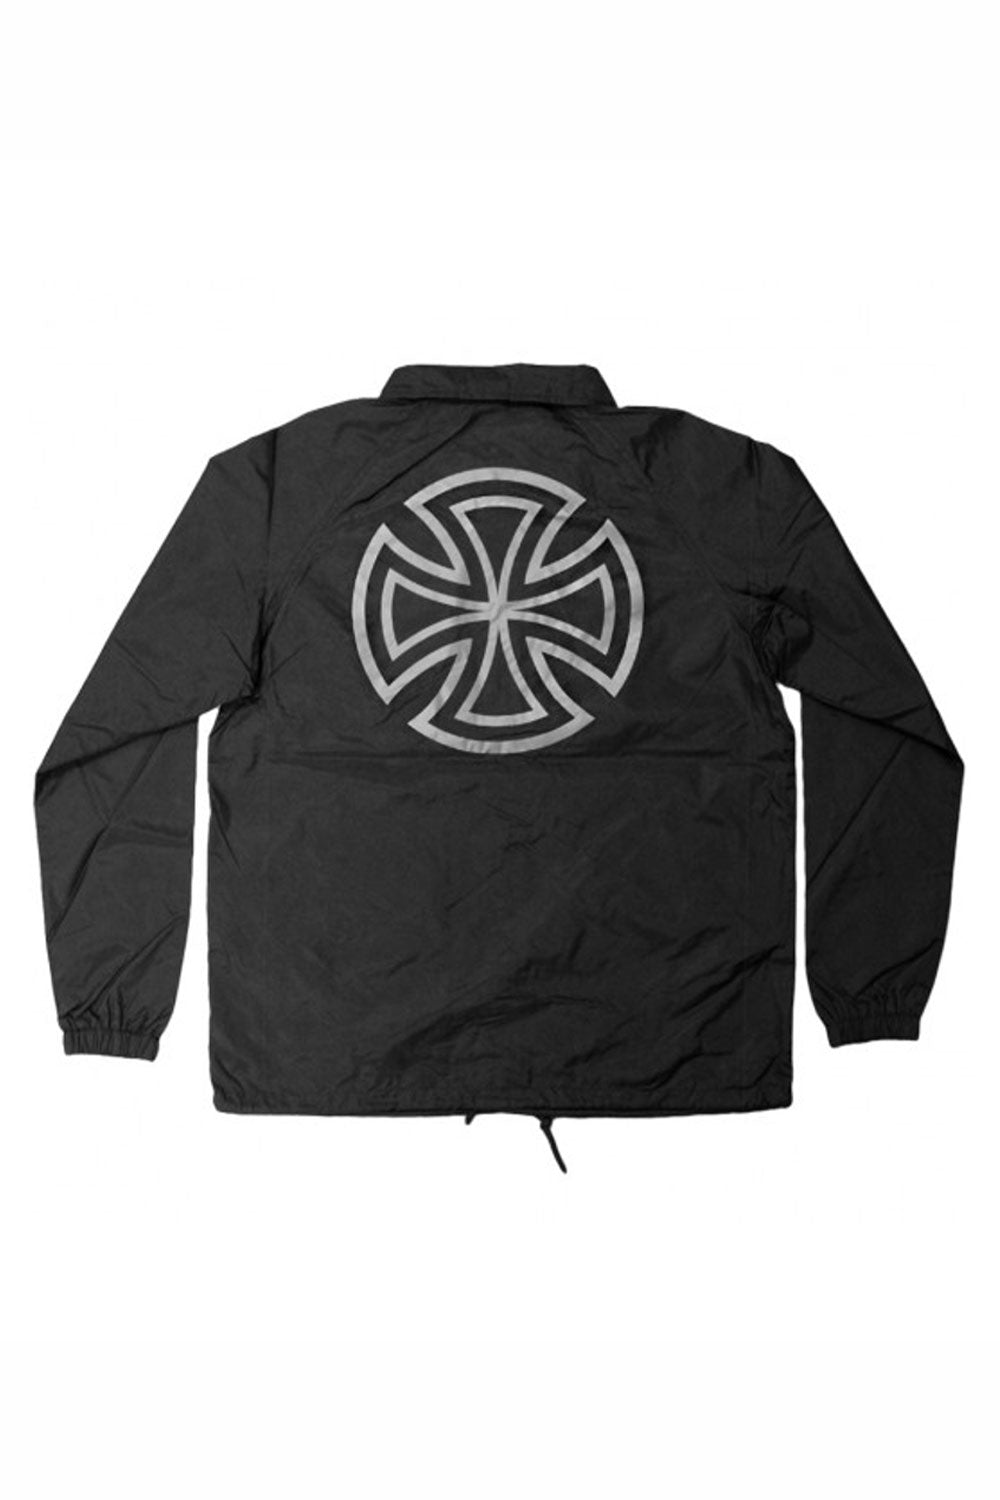 Independent Bar Cross Coaches Jacket